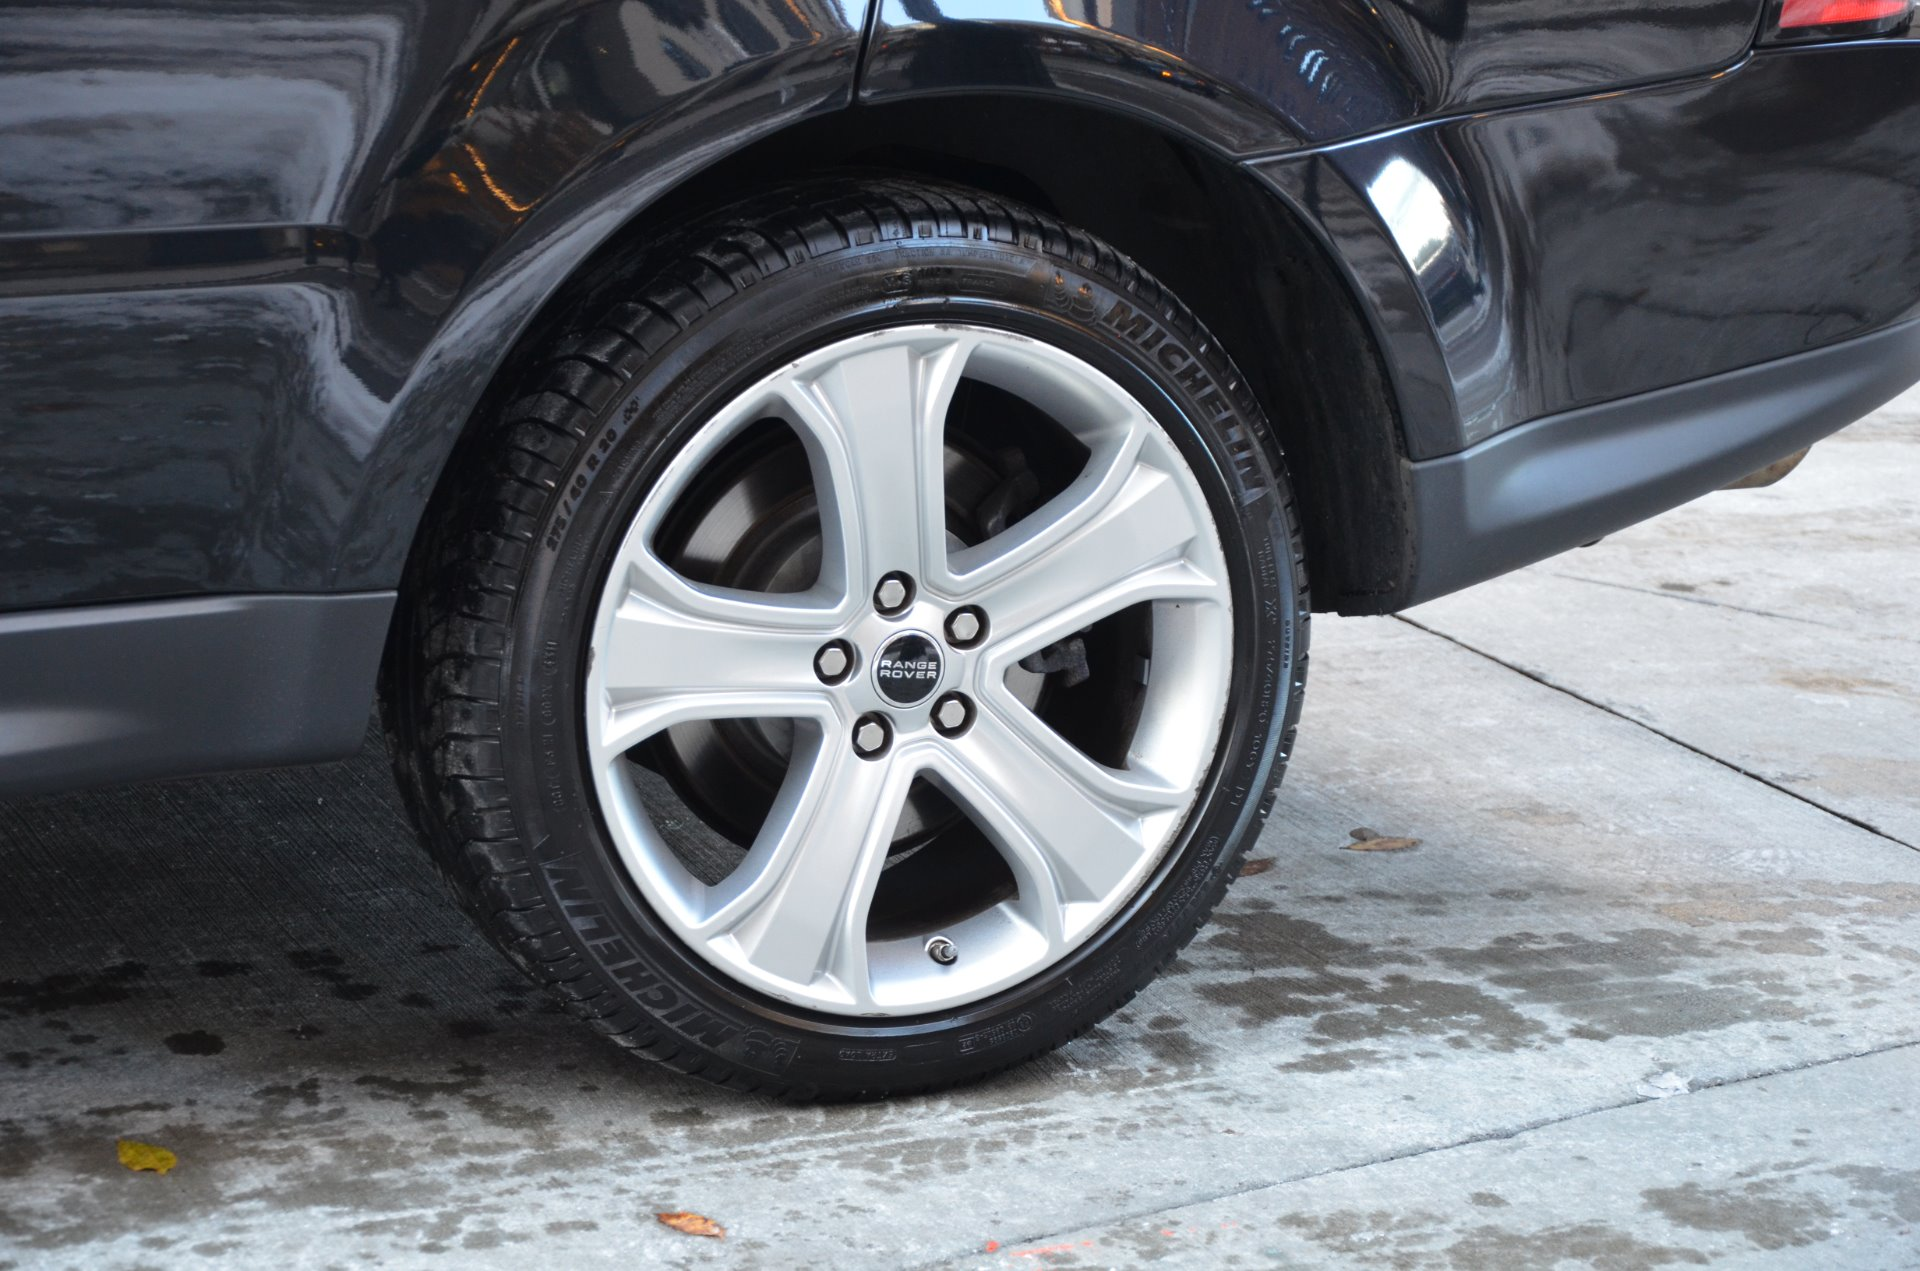 2012 land rover range rover sport hse lux stock b854a for sale near chicago il il land - Land rover garage near me ...